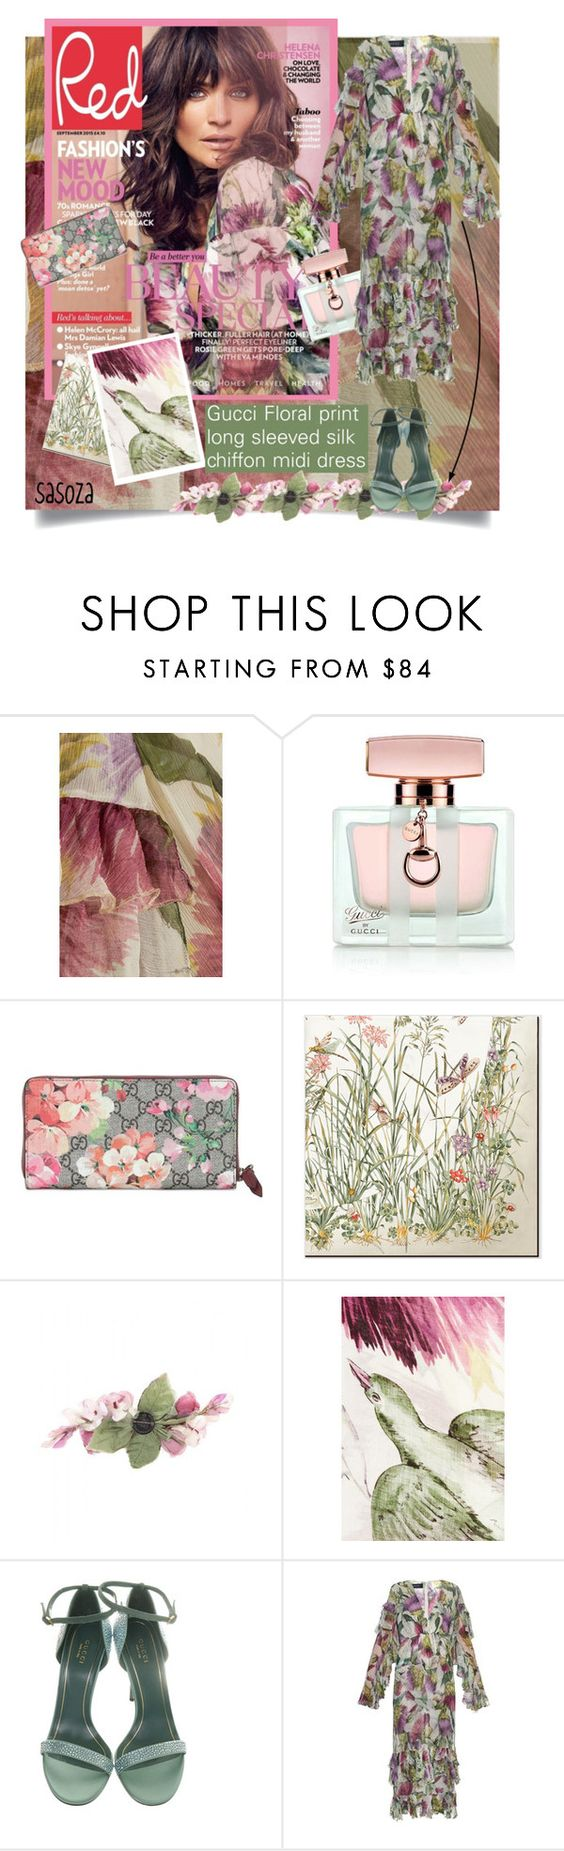 """""""Gucci Floral dress by sasoza"""" by sasooza ❤ liked on Polyvore featuring Gucci, gucci, FashionBook, floral, floraldress, moodboard, getthemood, GetTheLook, inspo and styleicon"""